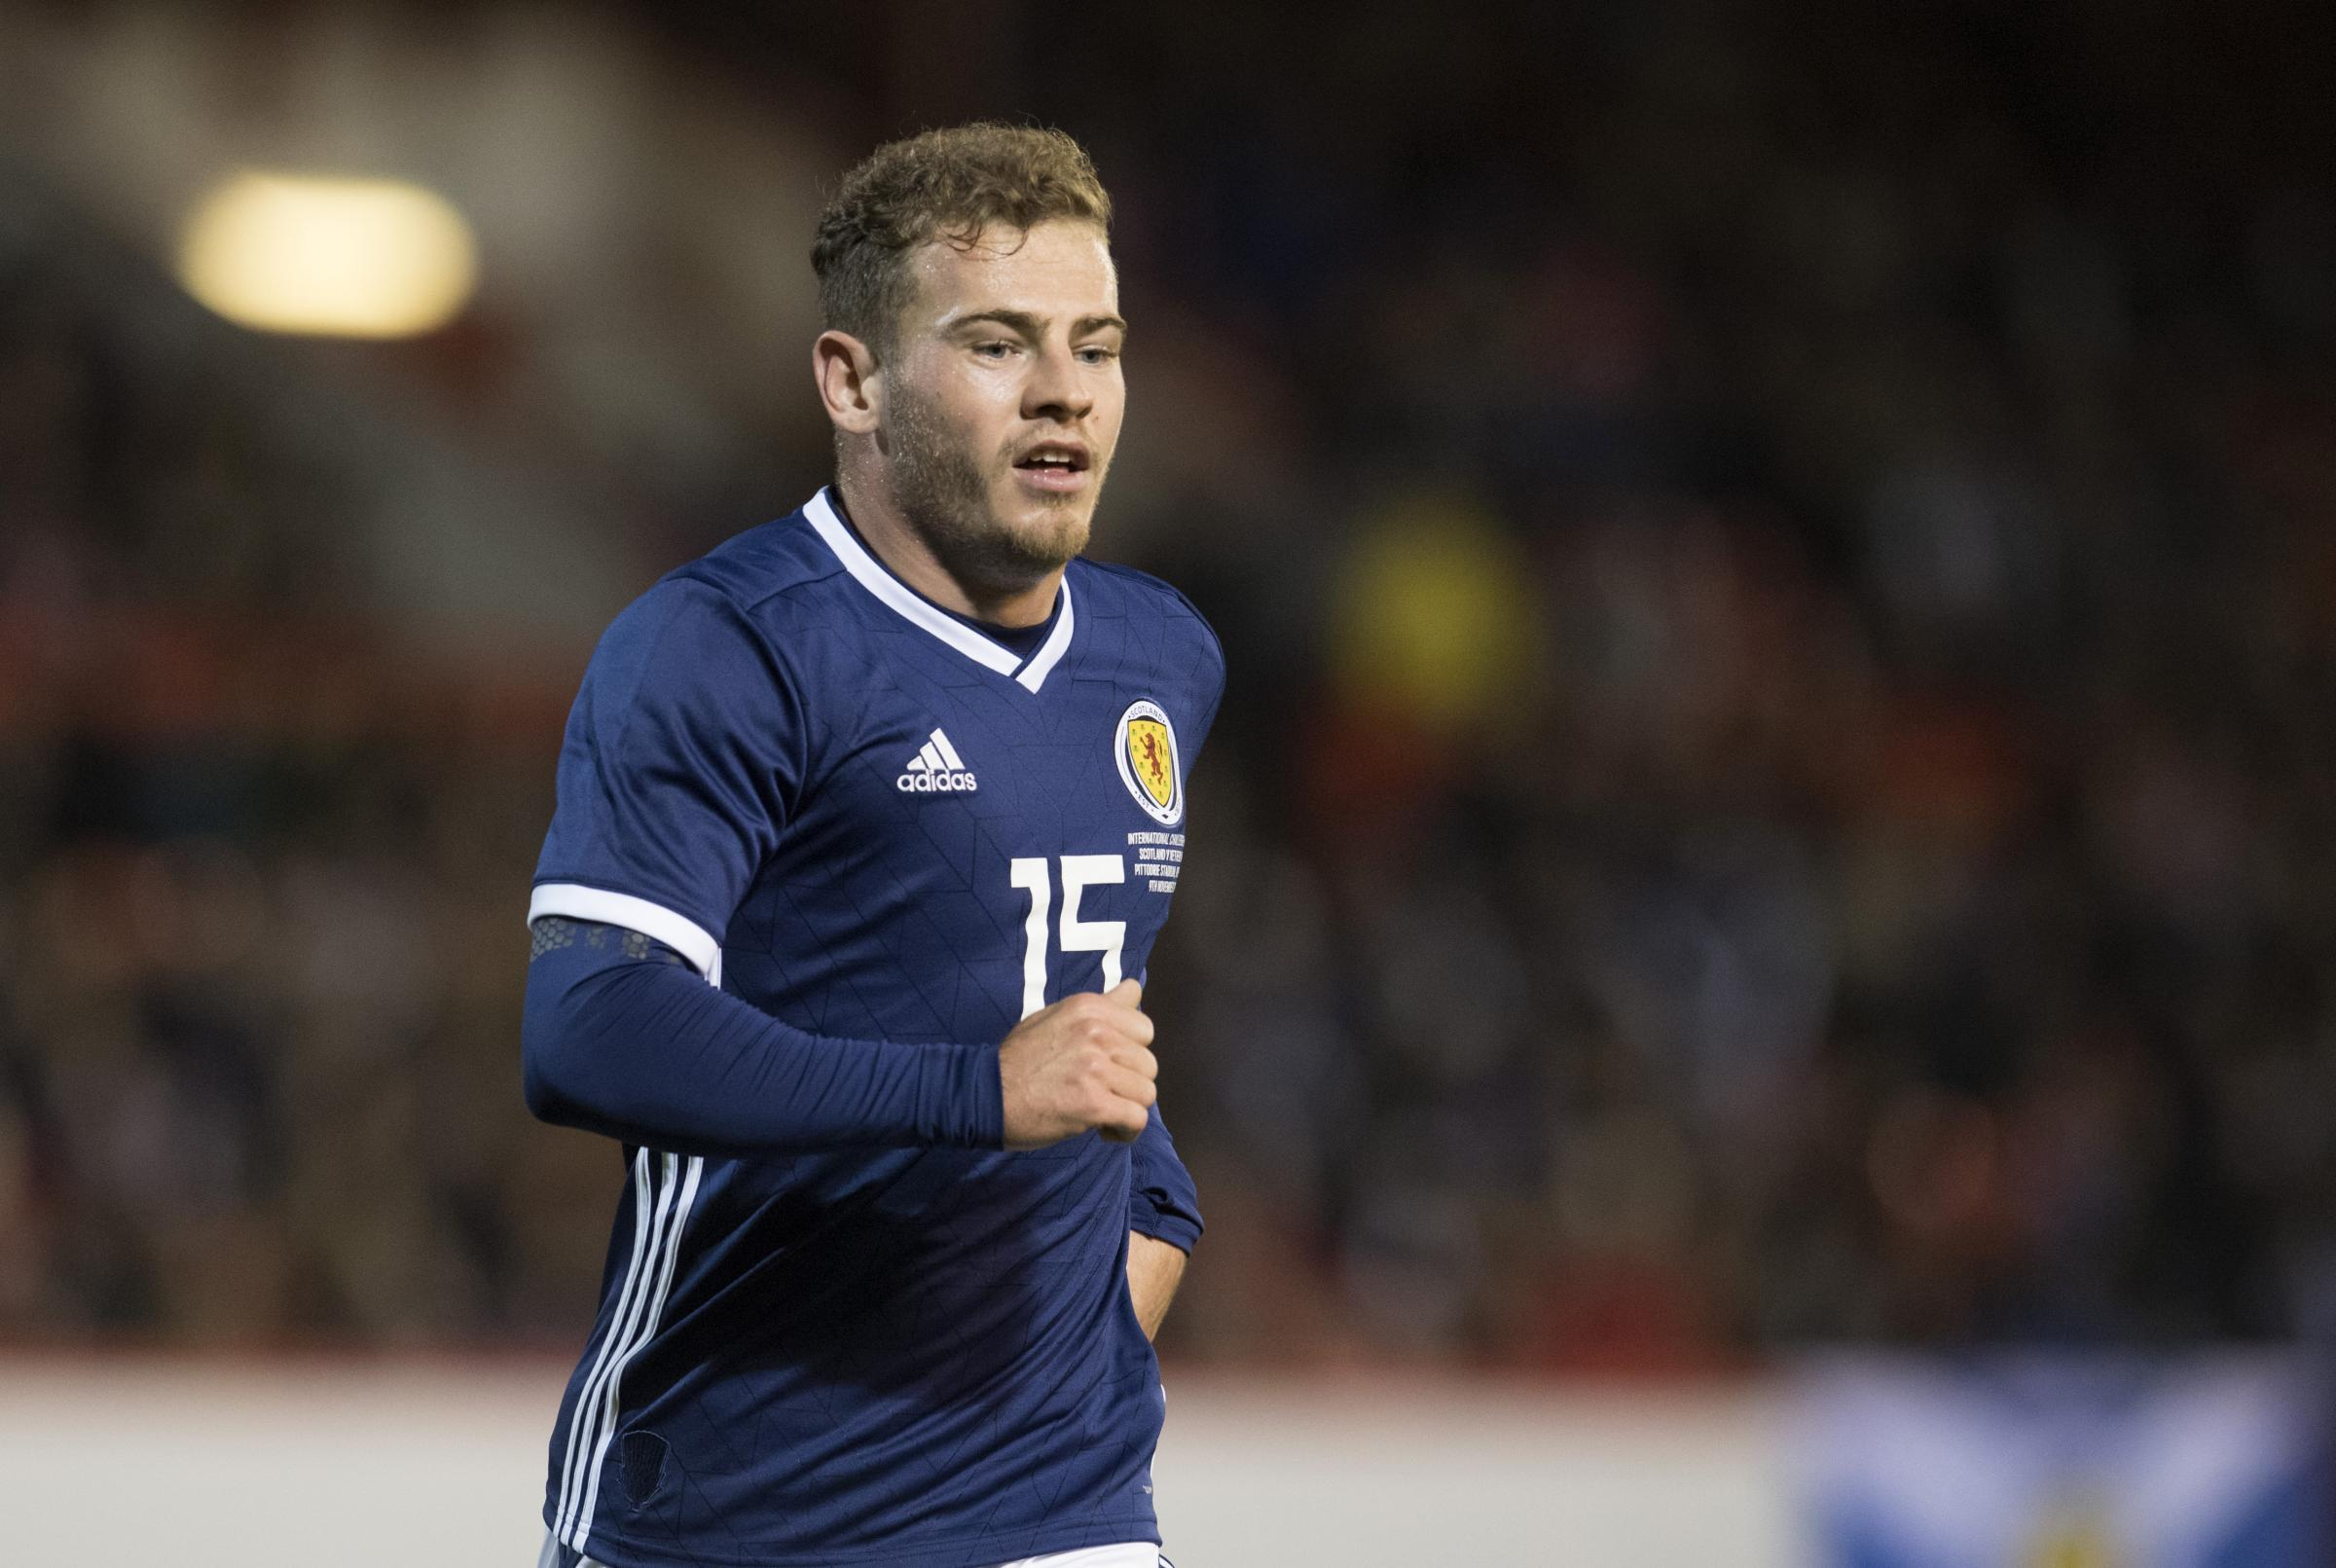 Ryan Fraser was gutted to miss a good chance to score after coming on for Scotland against The Netherlands.